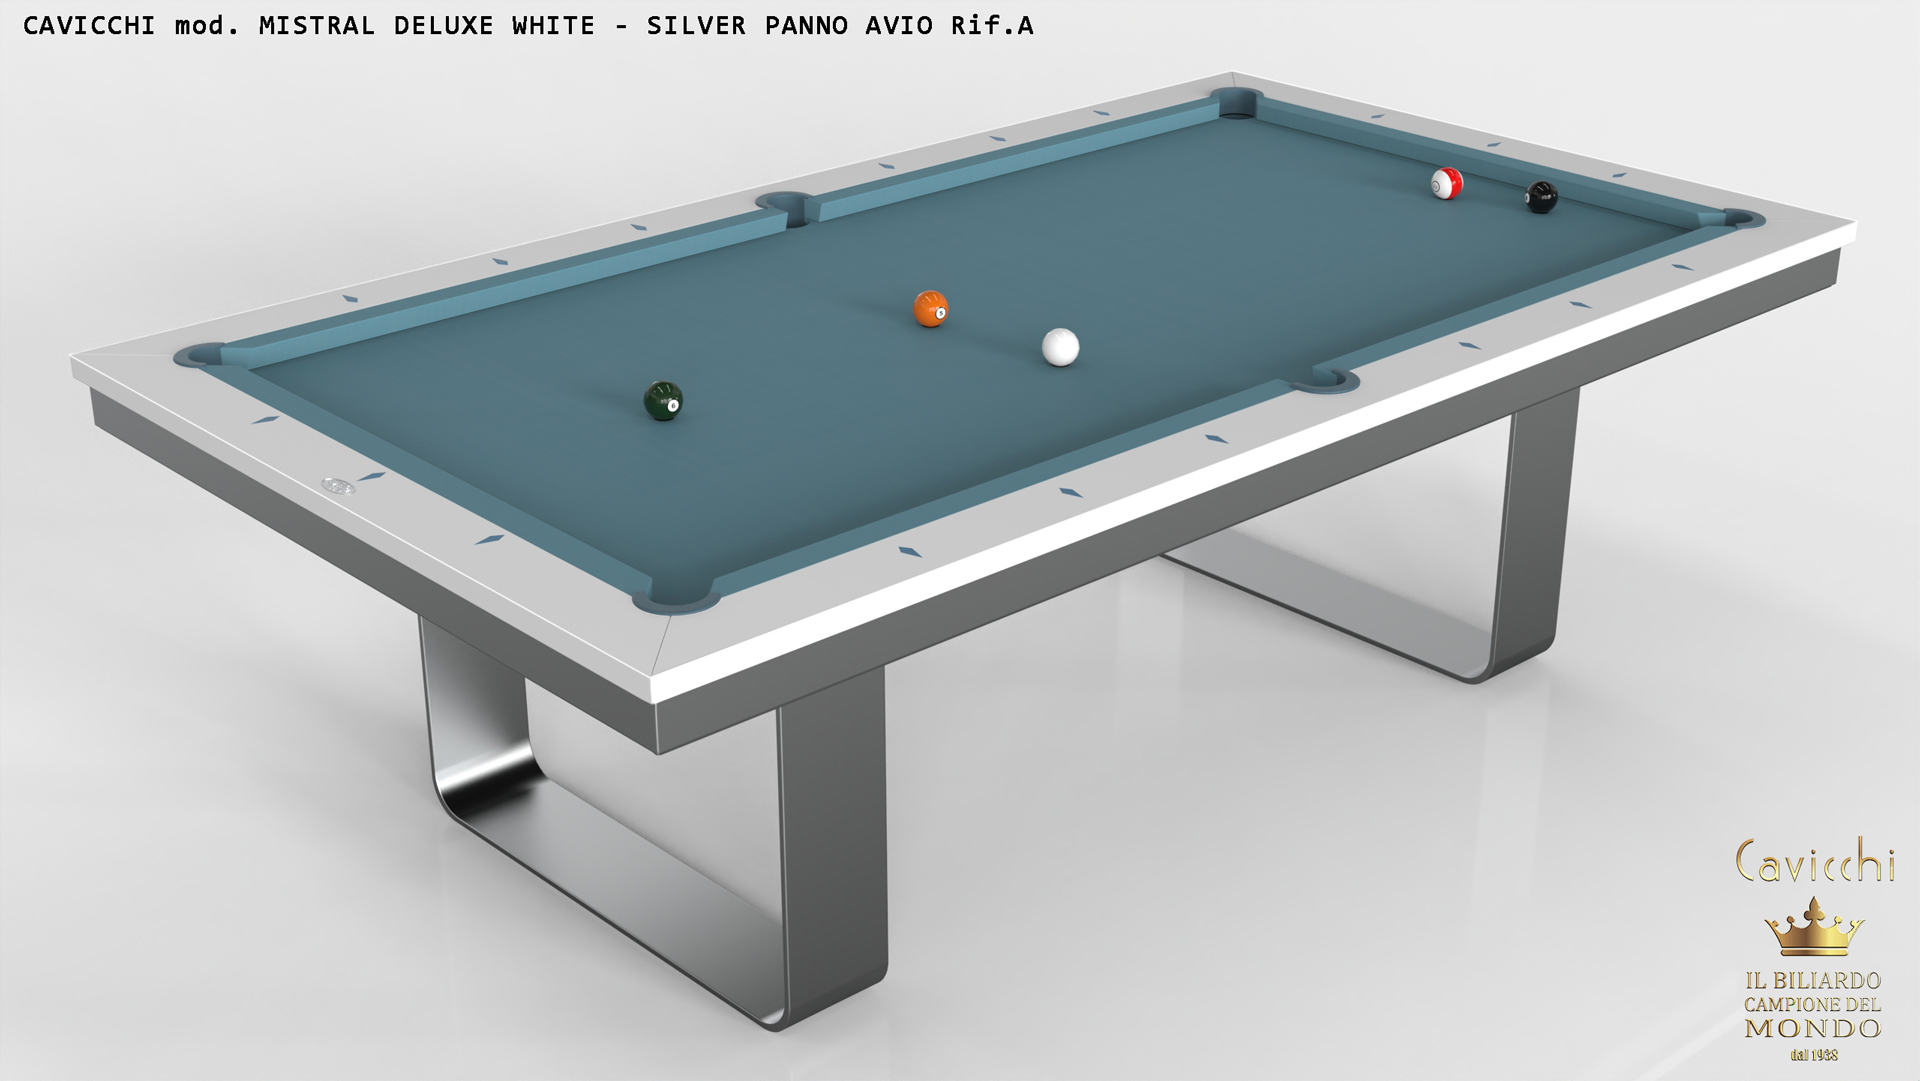 Cavicchi Mistral Deluxe pool table 1